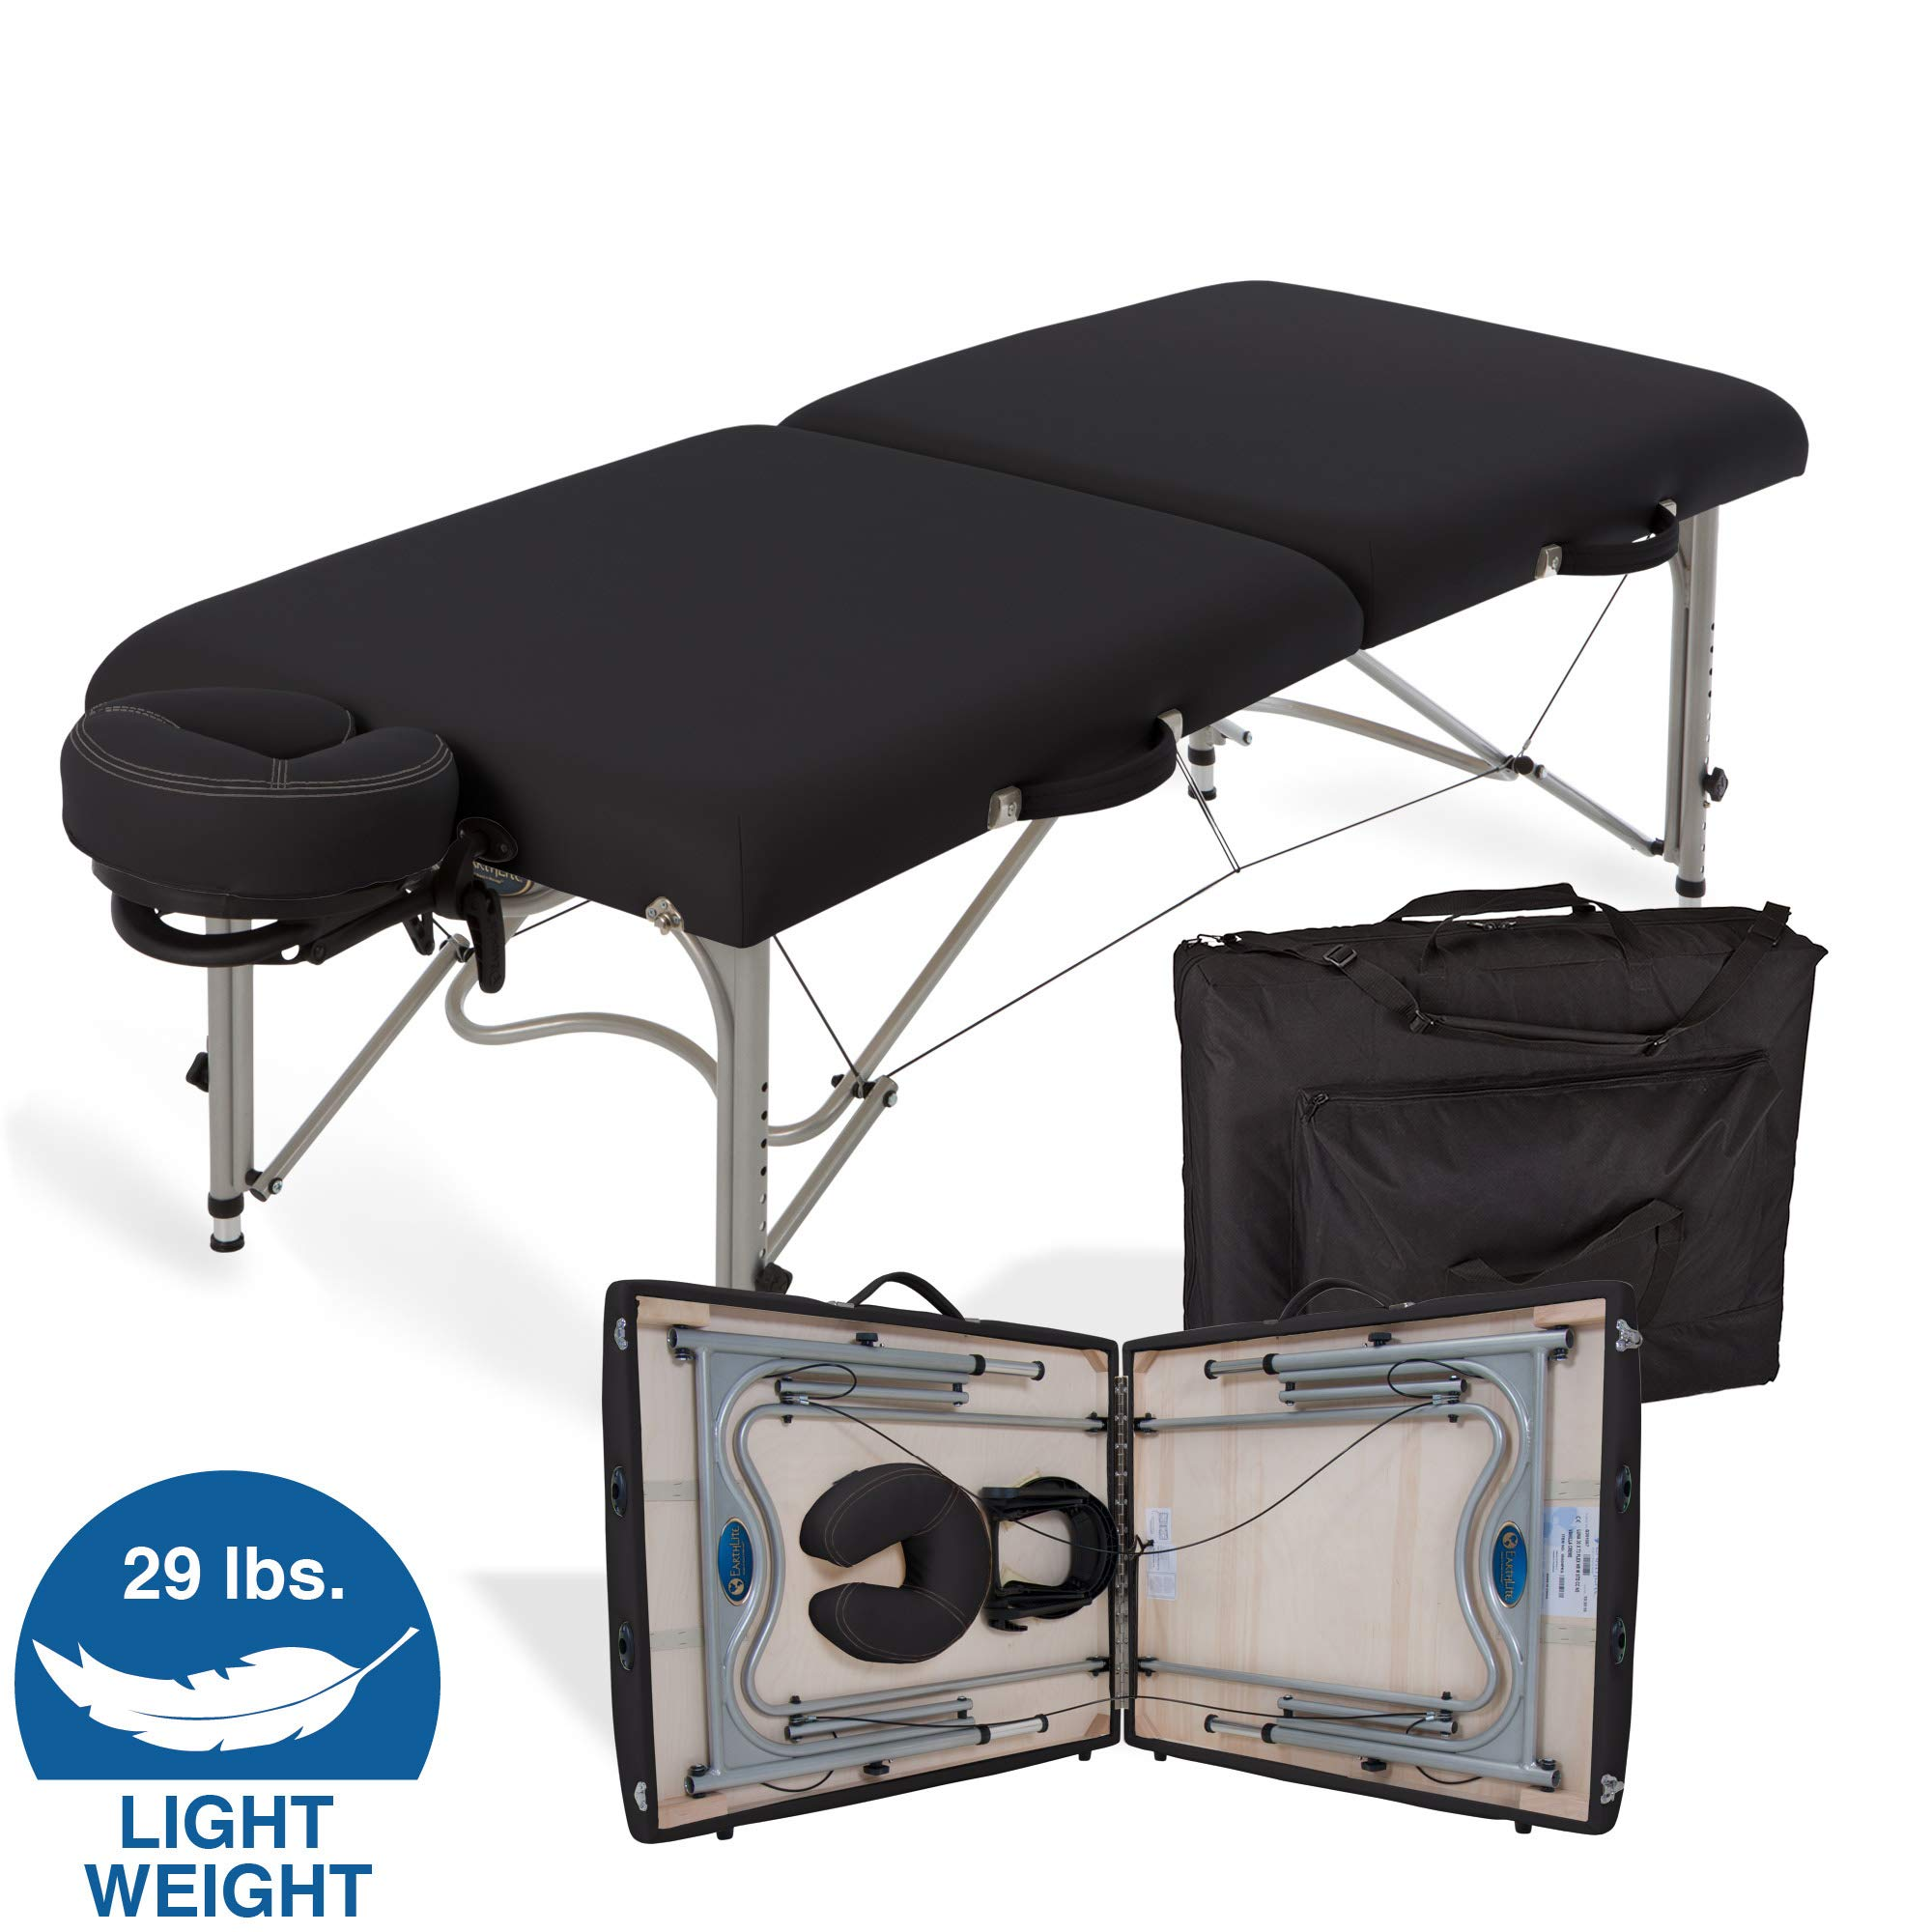 EARTHLITE Portable Massage Table Luna